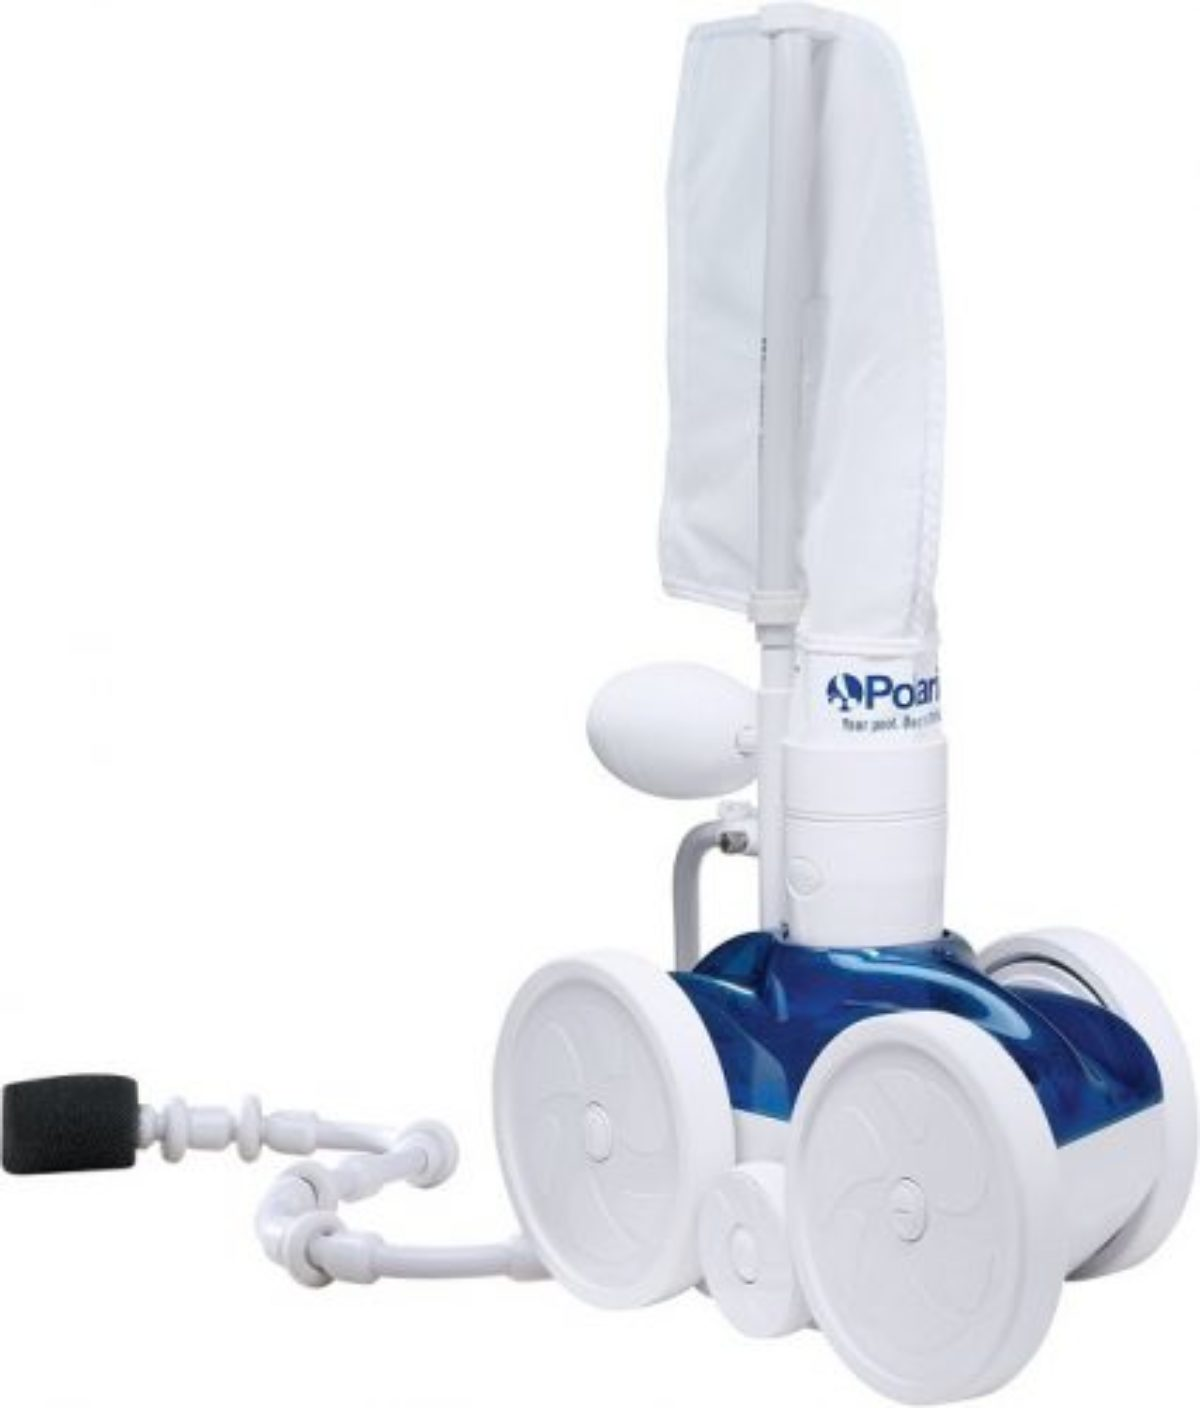 6-130-00 Polaris 65 Vac-Sweep Above Ground Pressure Side Automatic Pool Cleaner